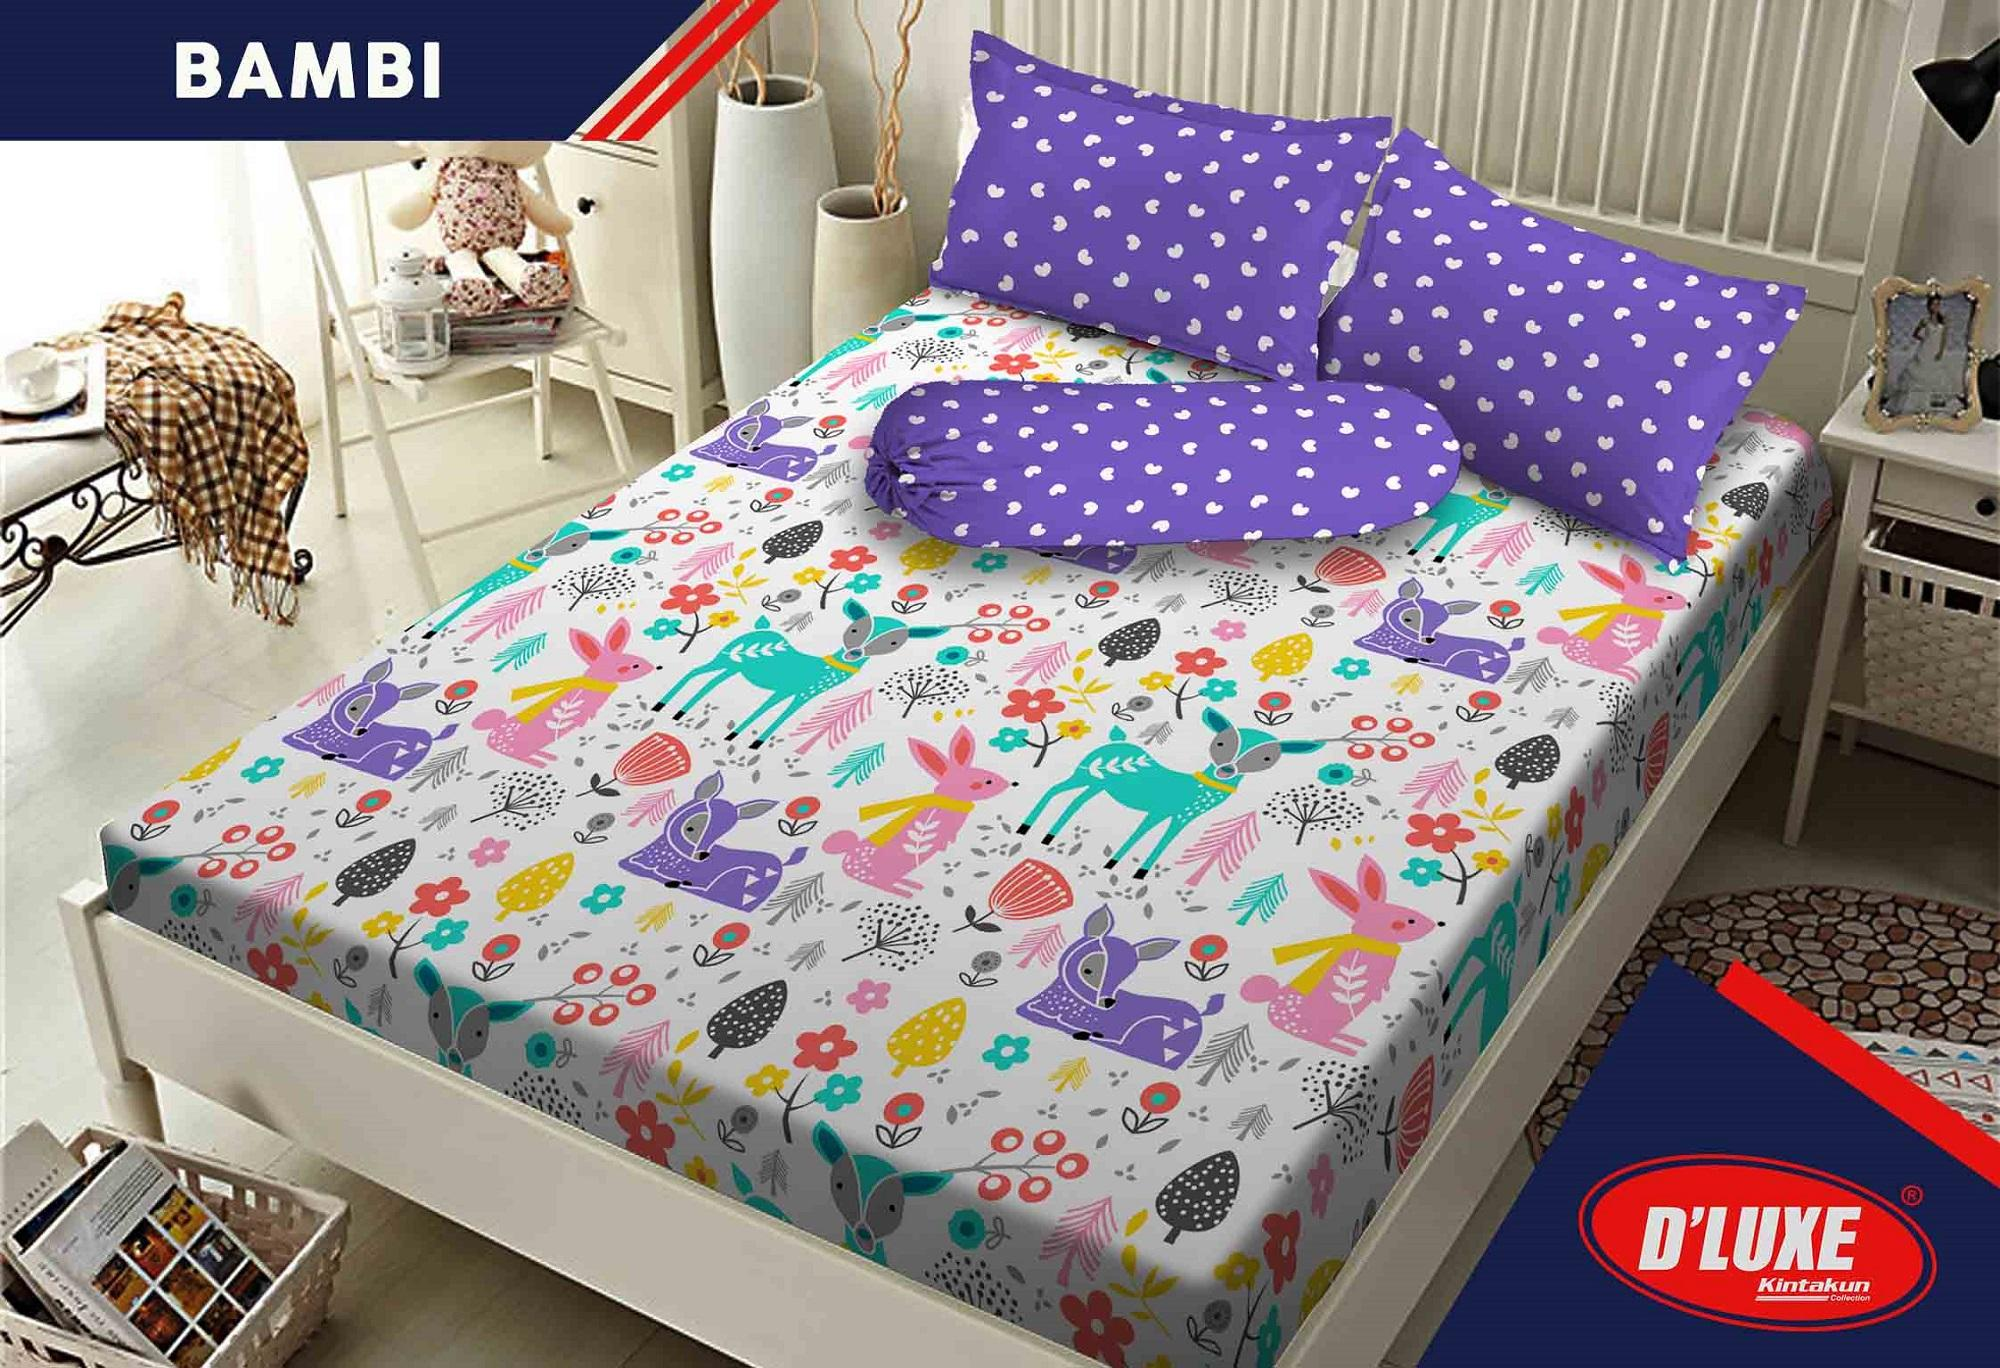 Sprei Kintakun Kids Edition Single Uk. 120x200 cm New - Bambi